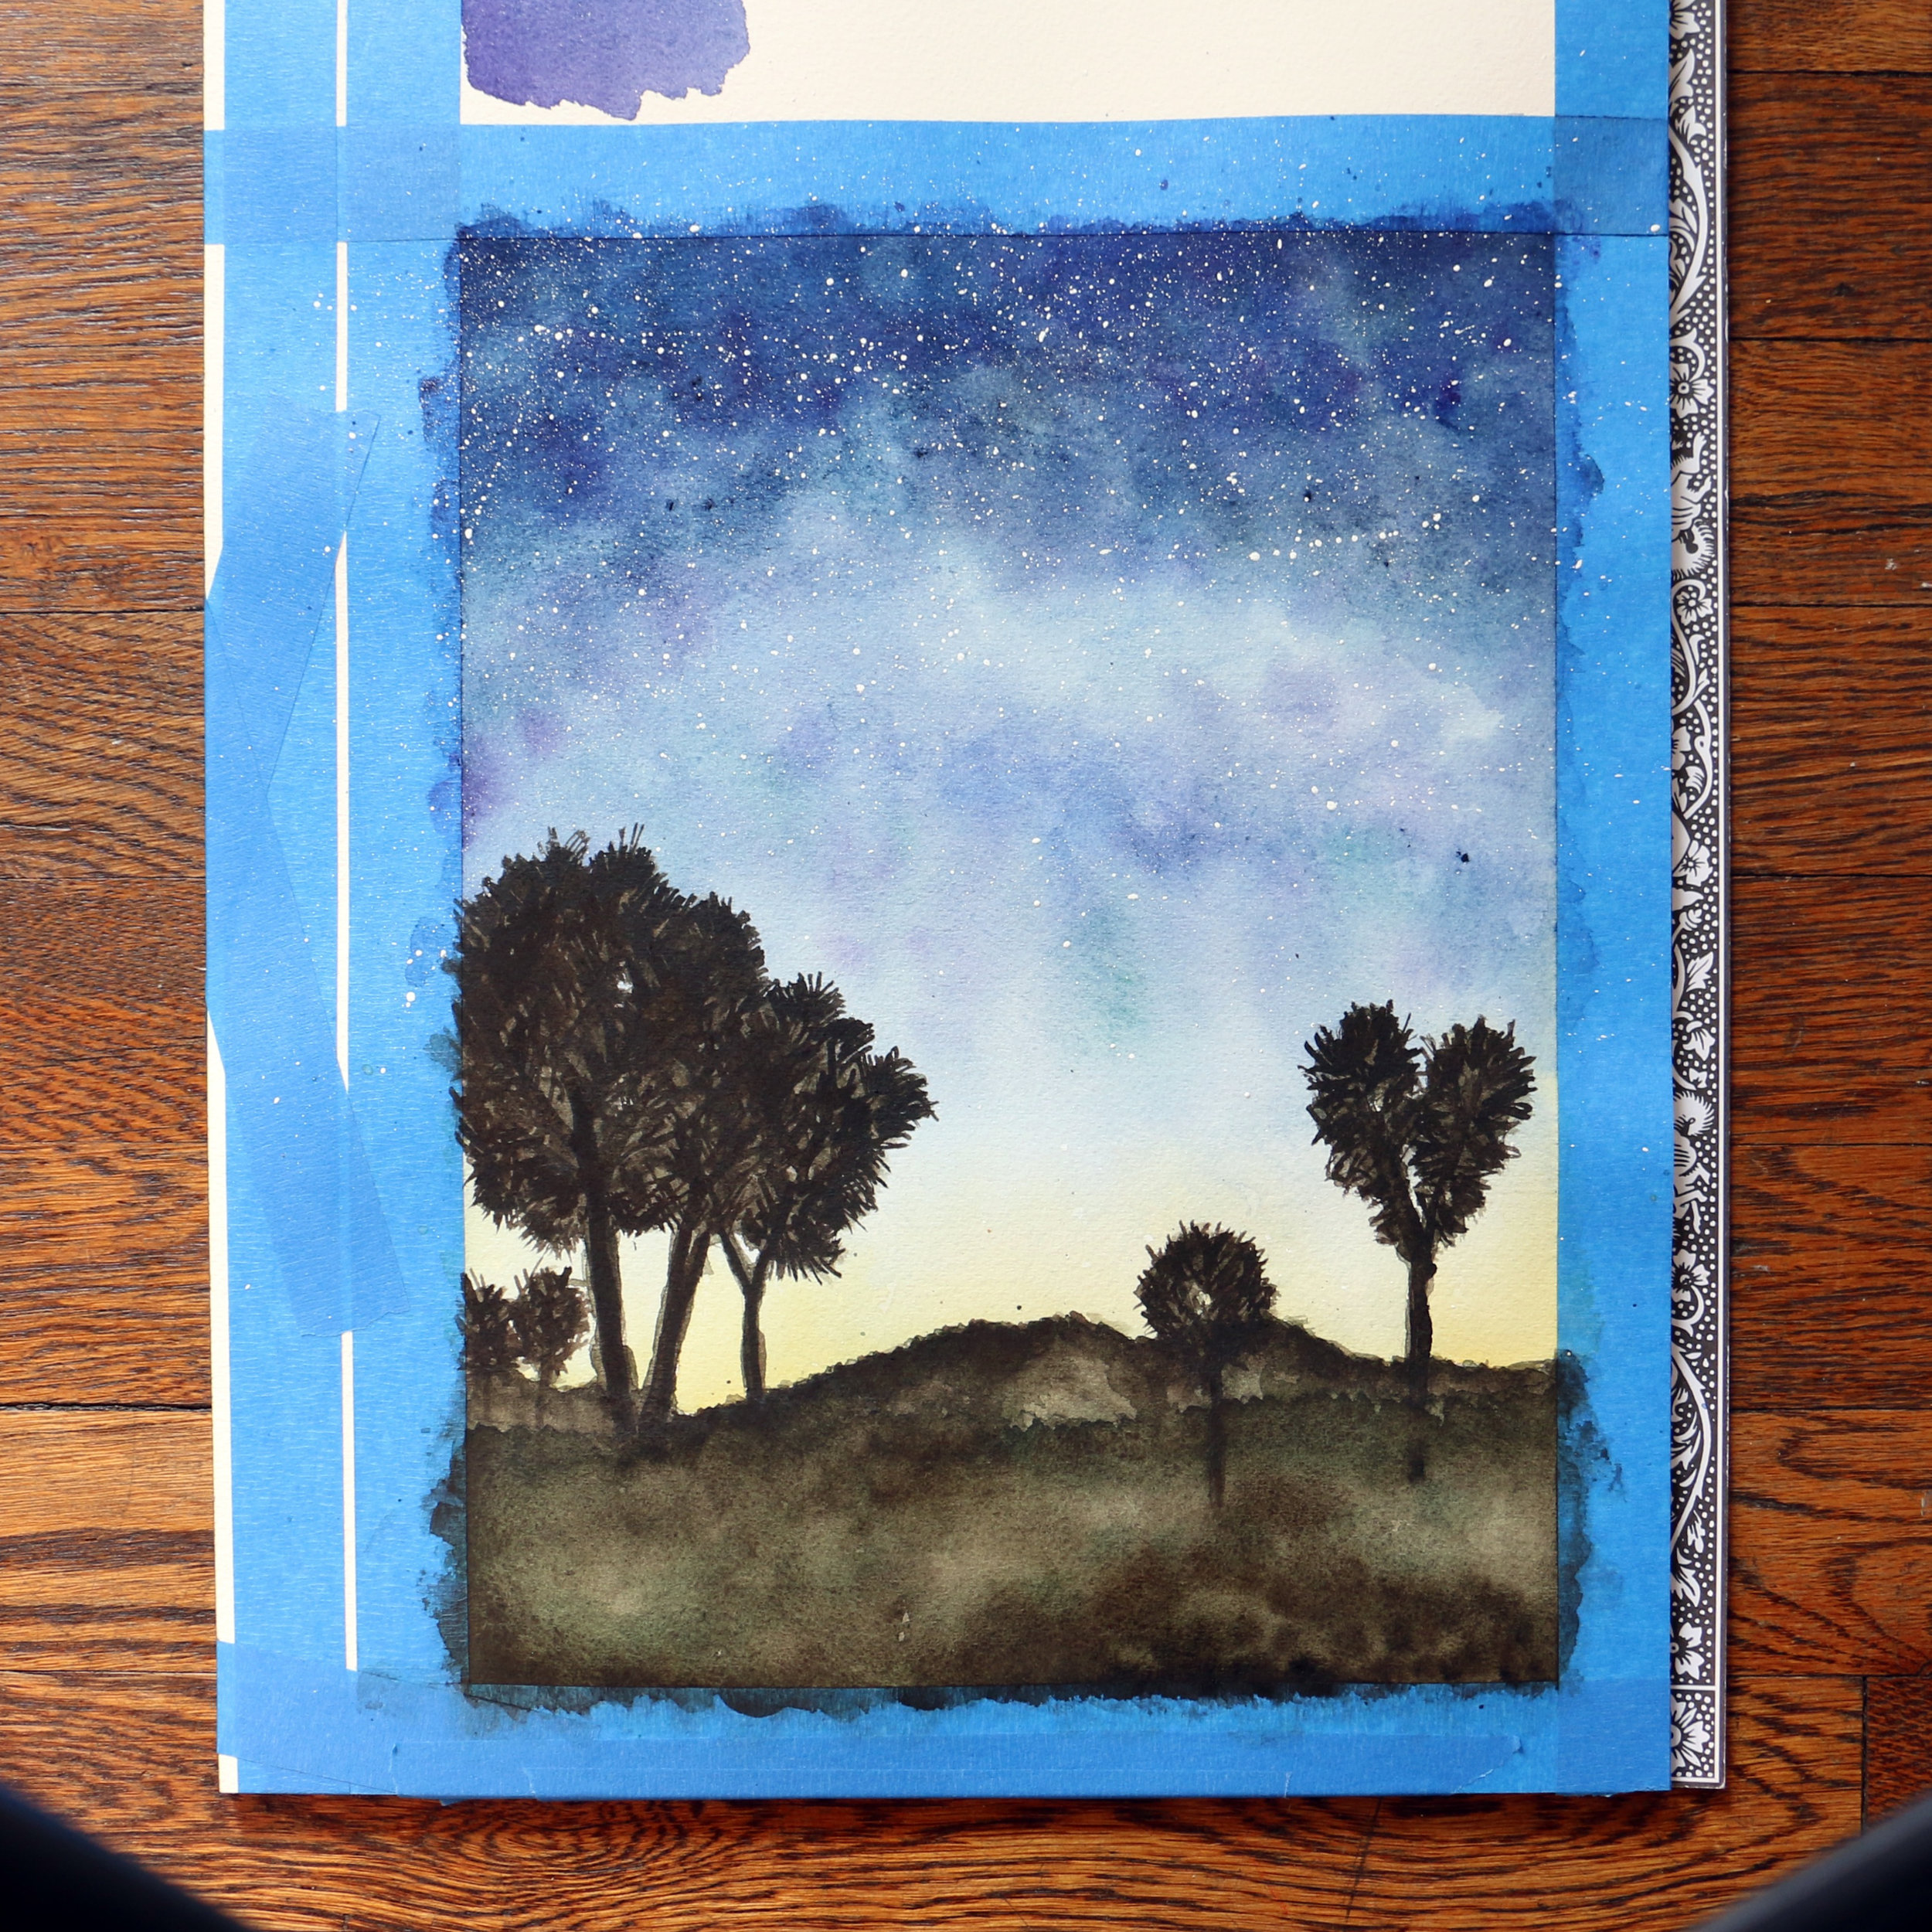 Step 3: Paint the foreground trees and landscape.